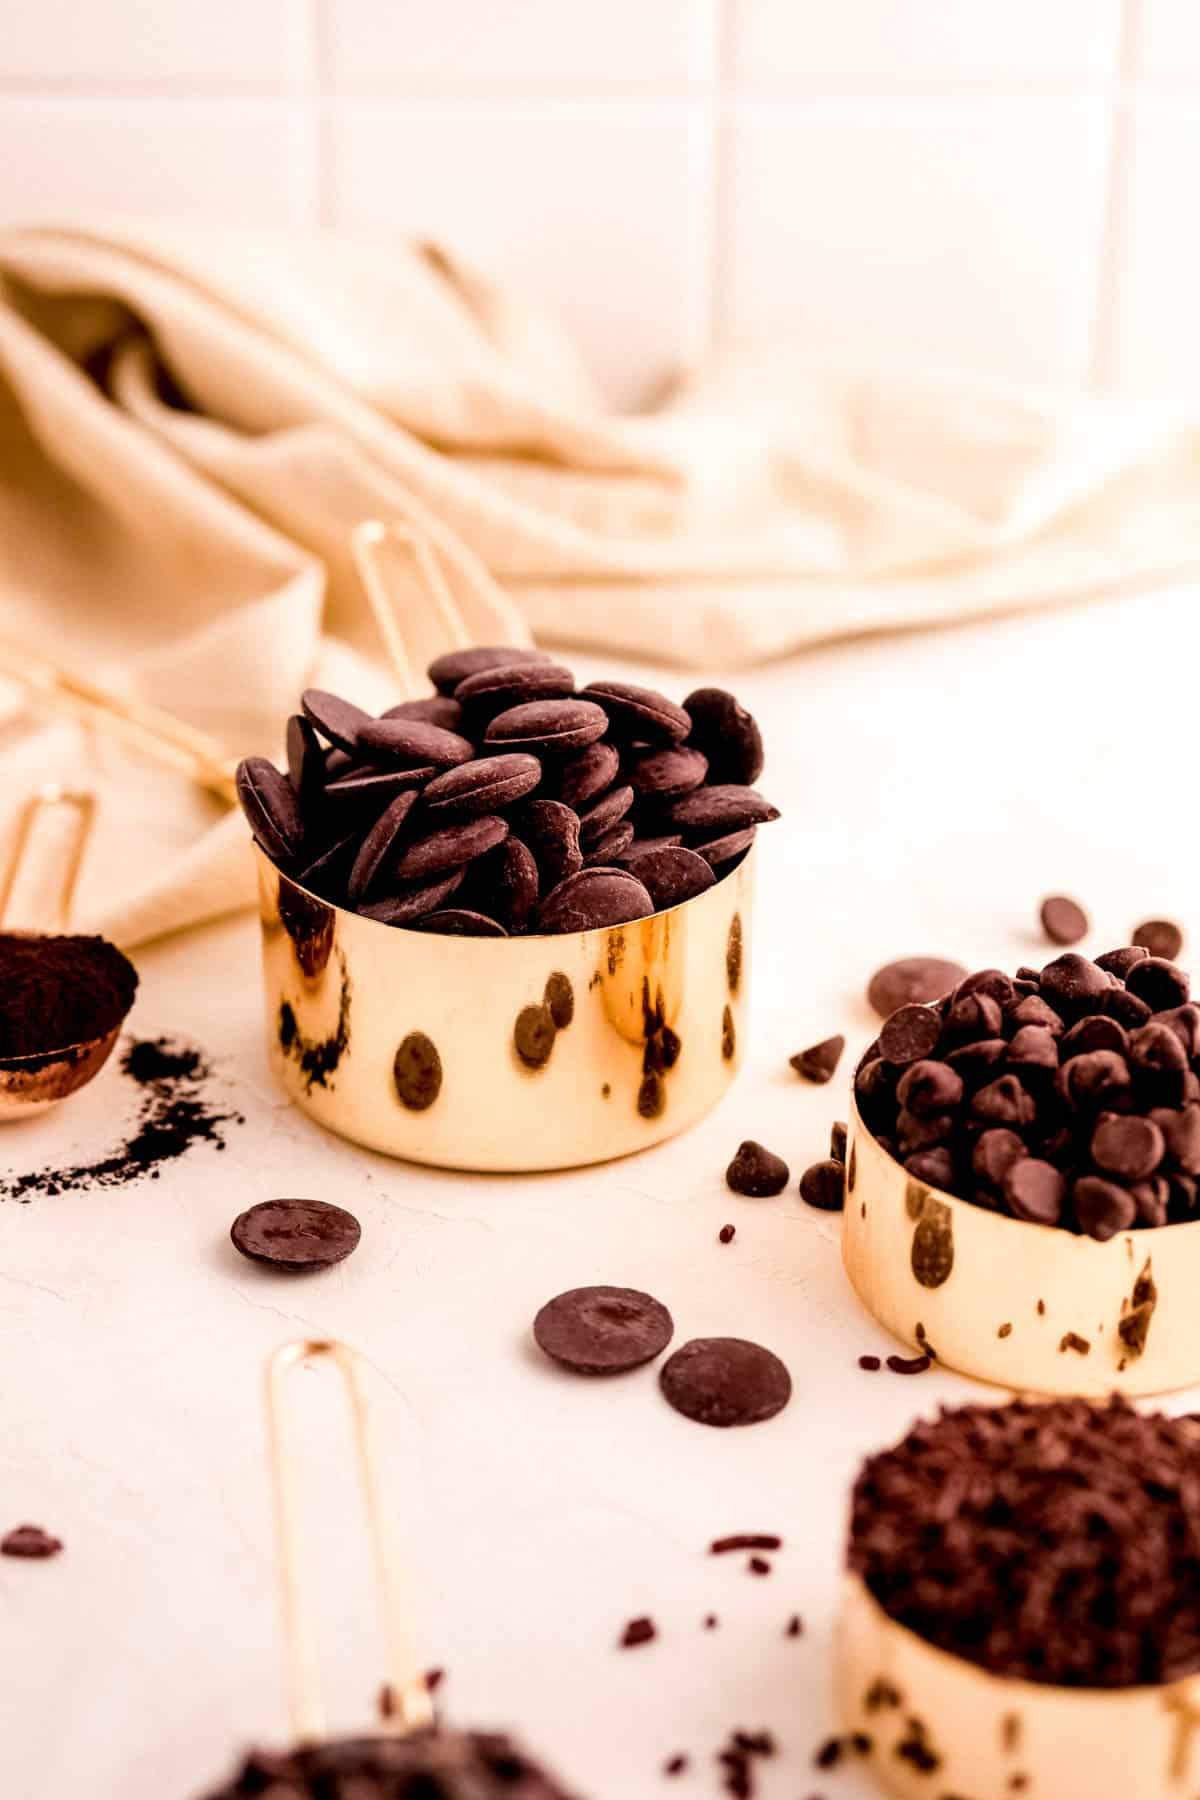 gold measuring cups piled high with chocolate ingredients.